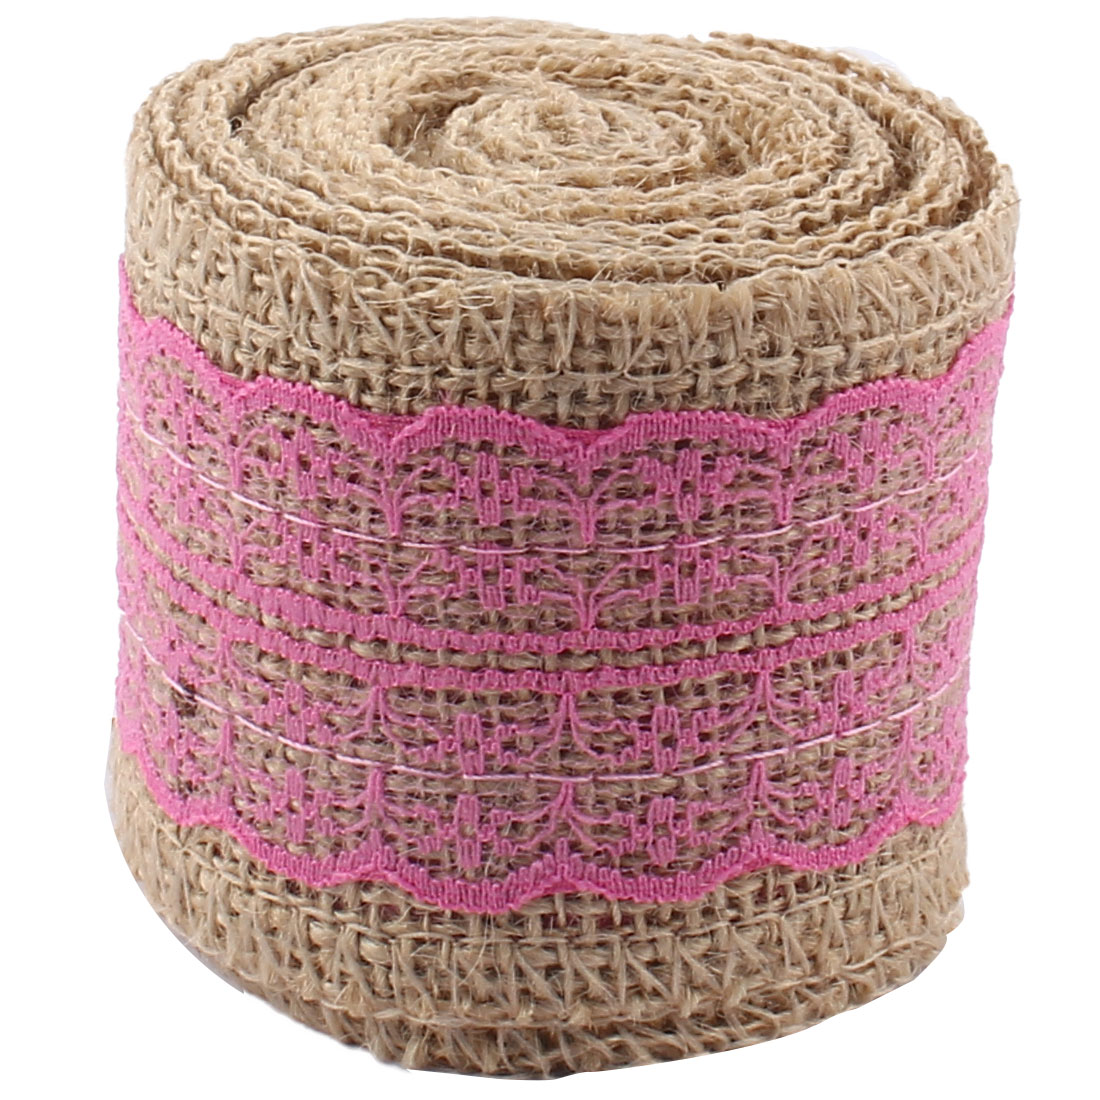 Room Decor Burlap DIY Gift Wrapping Packing Craft Ribbon Roll Fuchsia 3.3 Yards - image 3 of 4